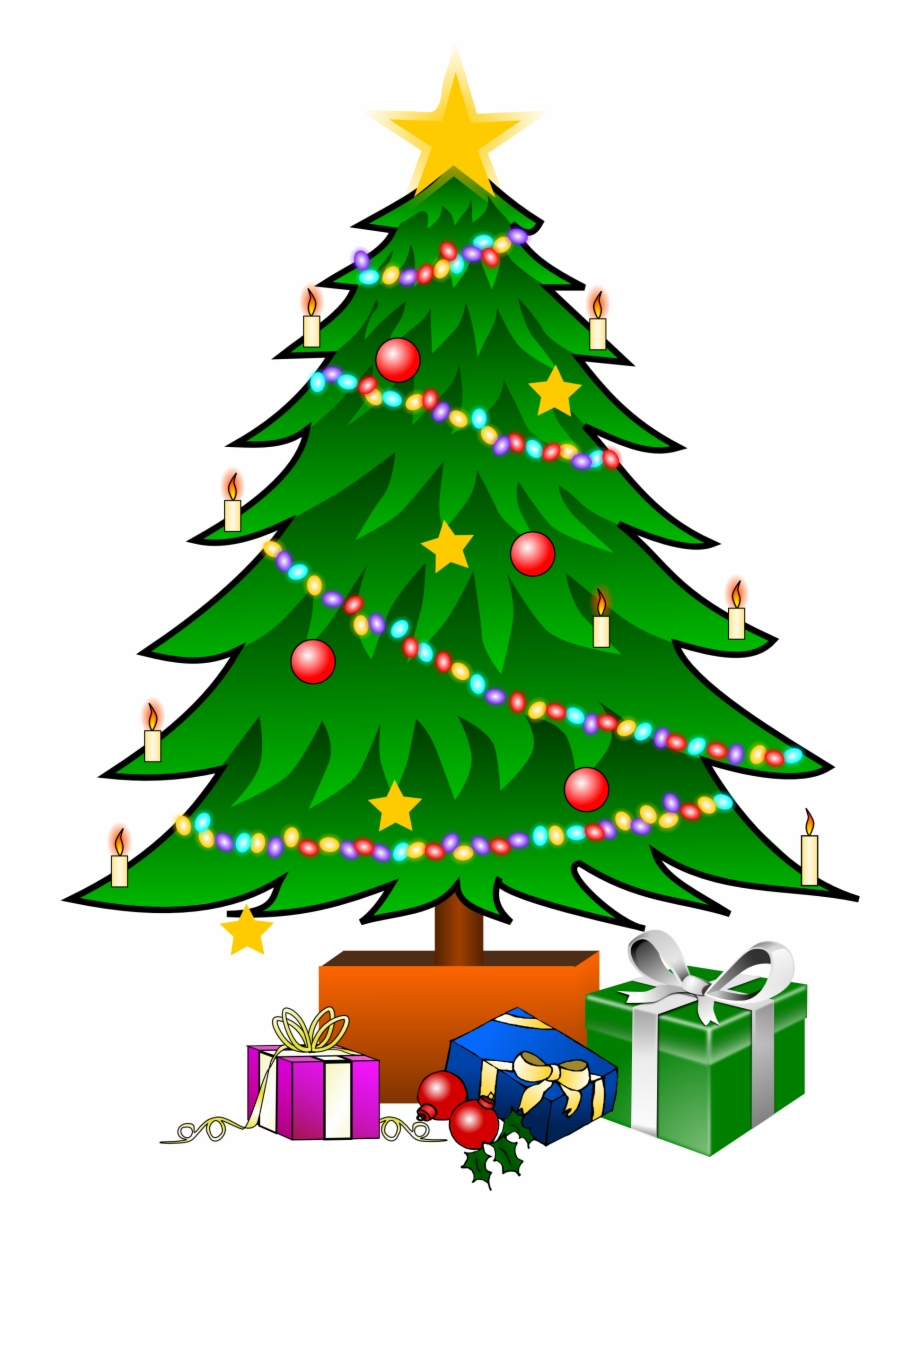 Xmas tree clipart png vector freeuse download Christmas Tree Graphic Christmas Tree Graphic Christmas ... vector freeuse download